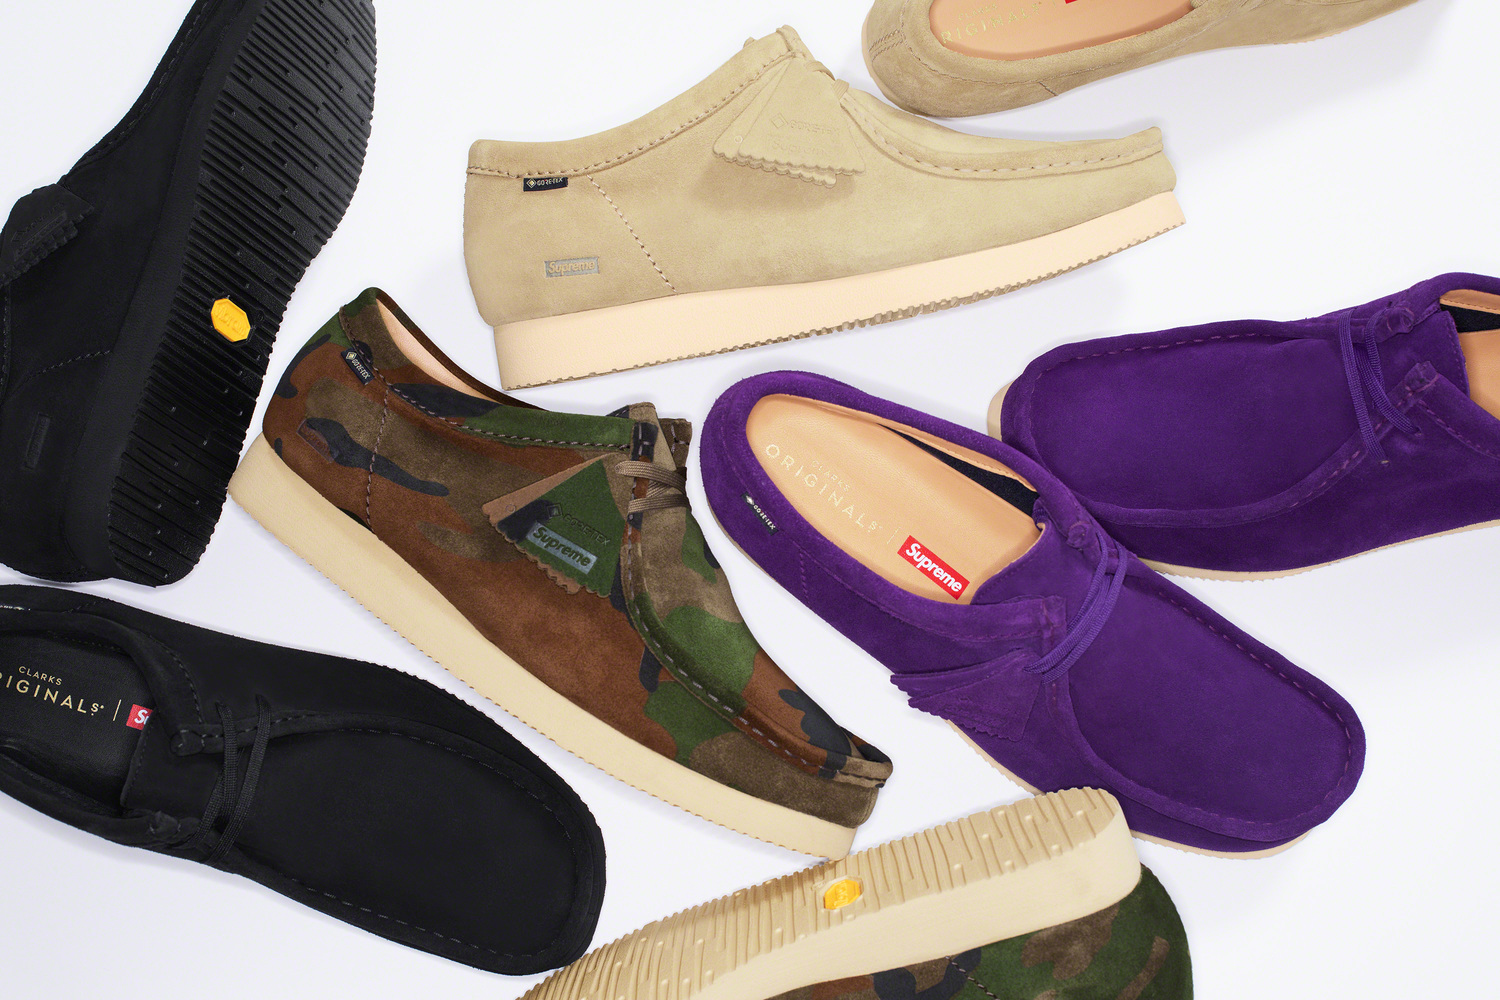 supreme-clarks-gore-tex-wallabee-19aw-19fw-collaboration-release-20191026-week9